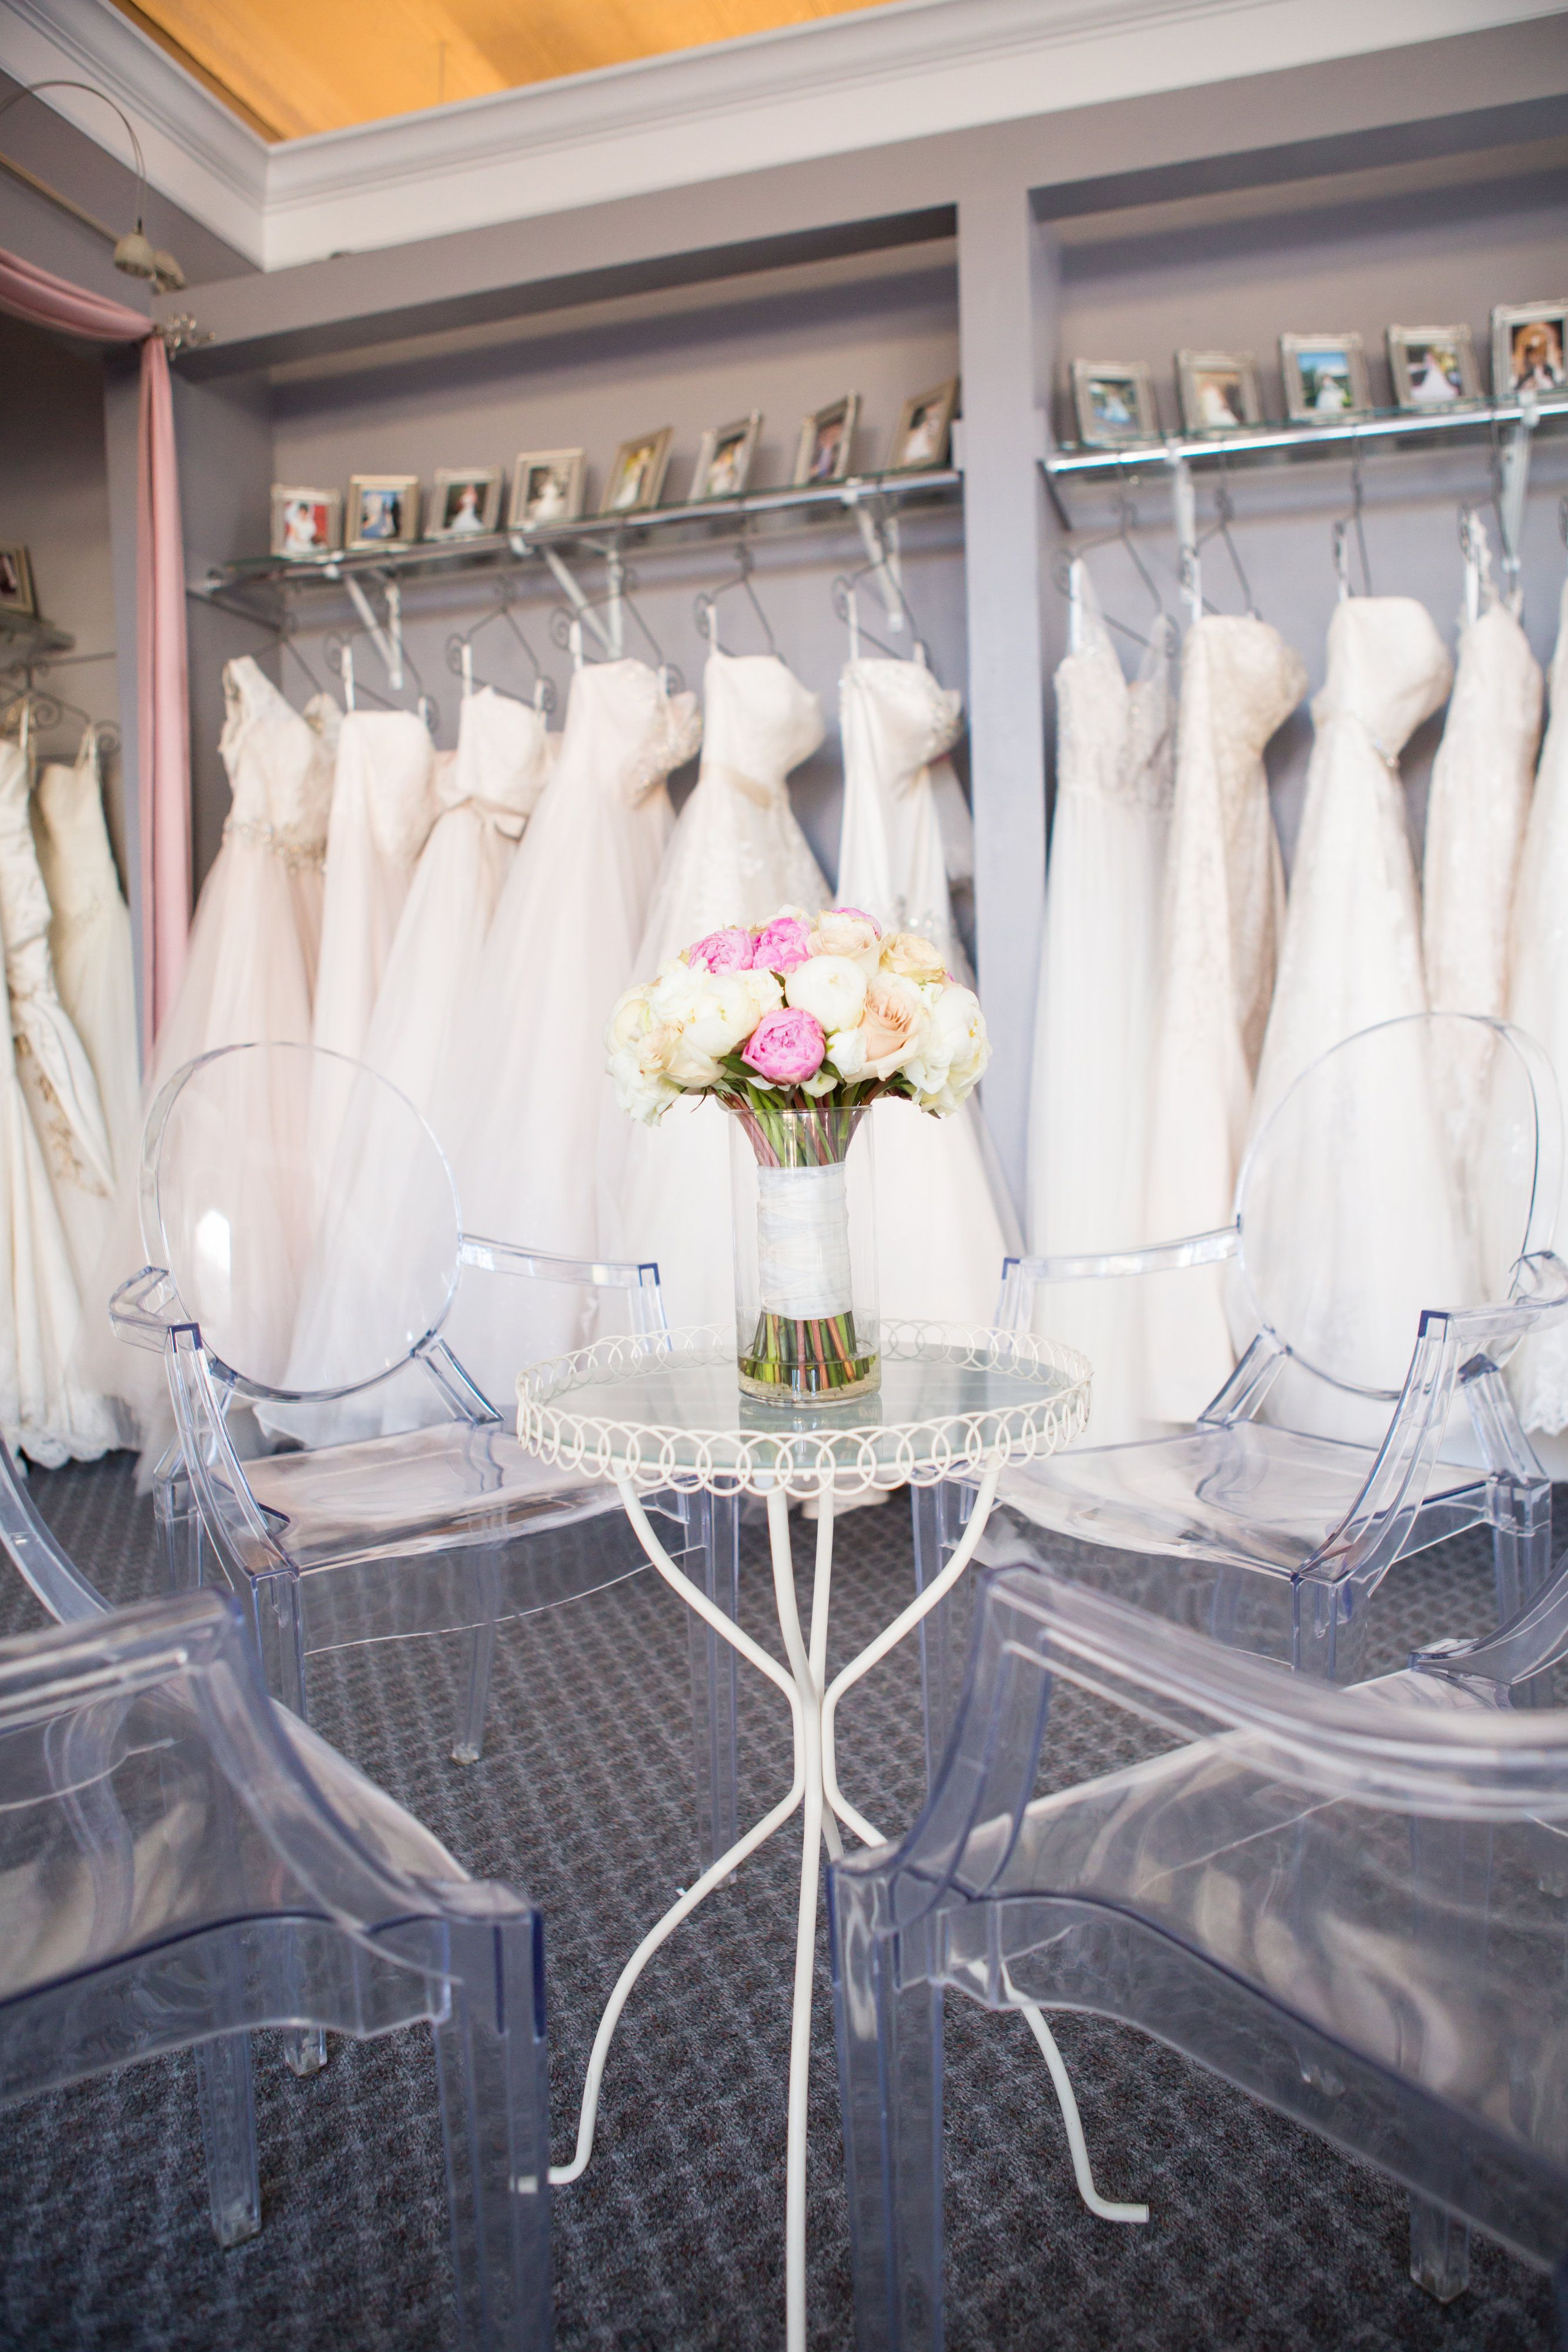 Uptown Bridal   Boutique Chandler  Arizona www uptownbrides com     Uptown Bridal   Boutique Chandler  Arizona www uptownbrides com   uptownbridal Photo by